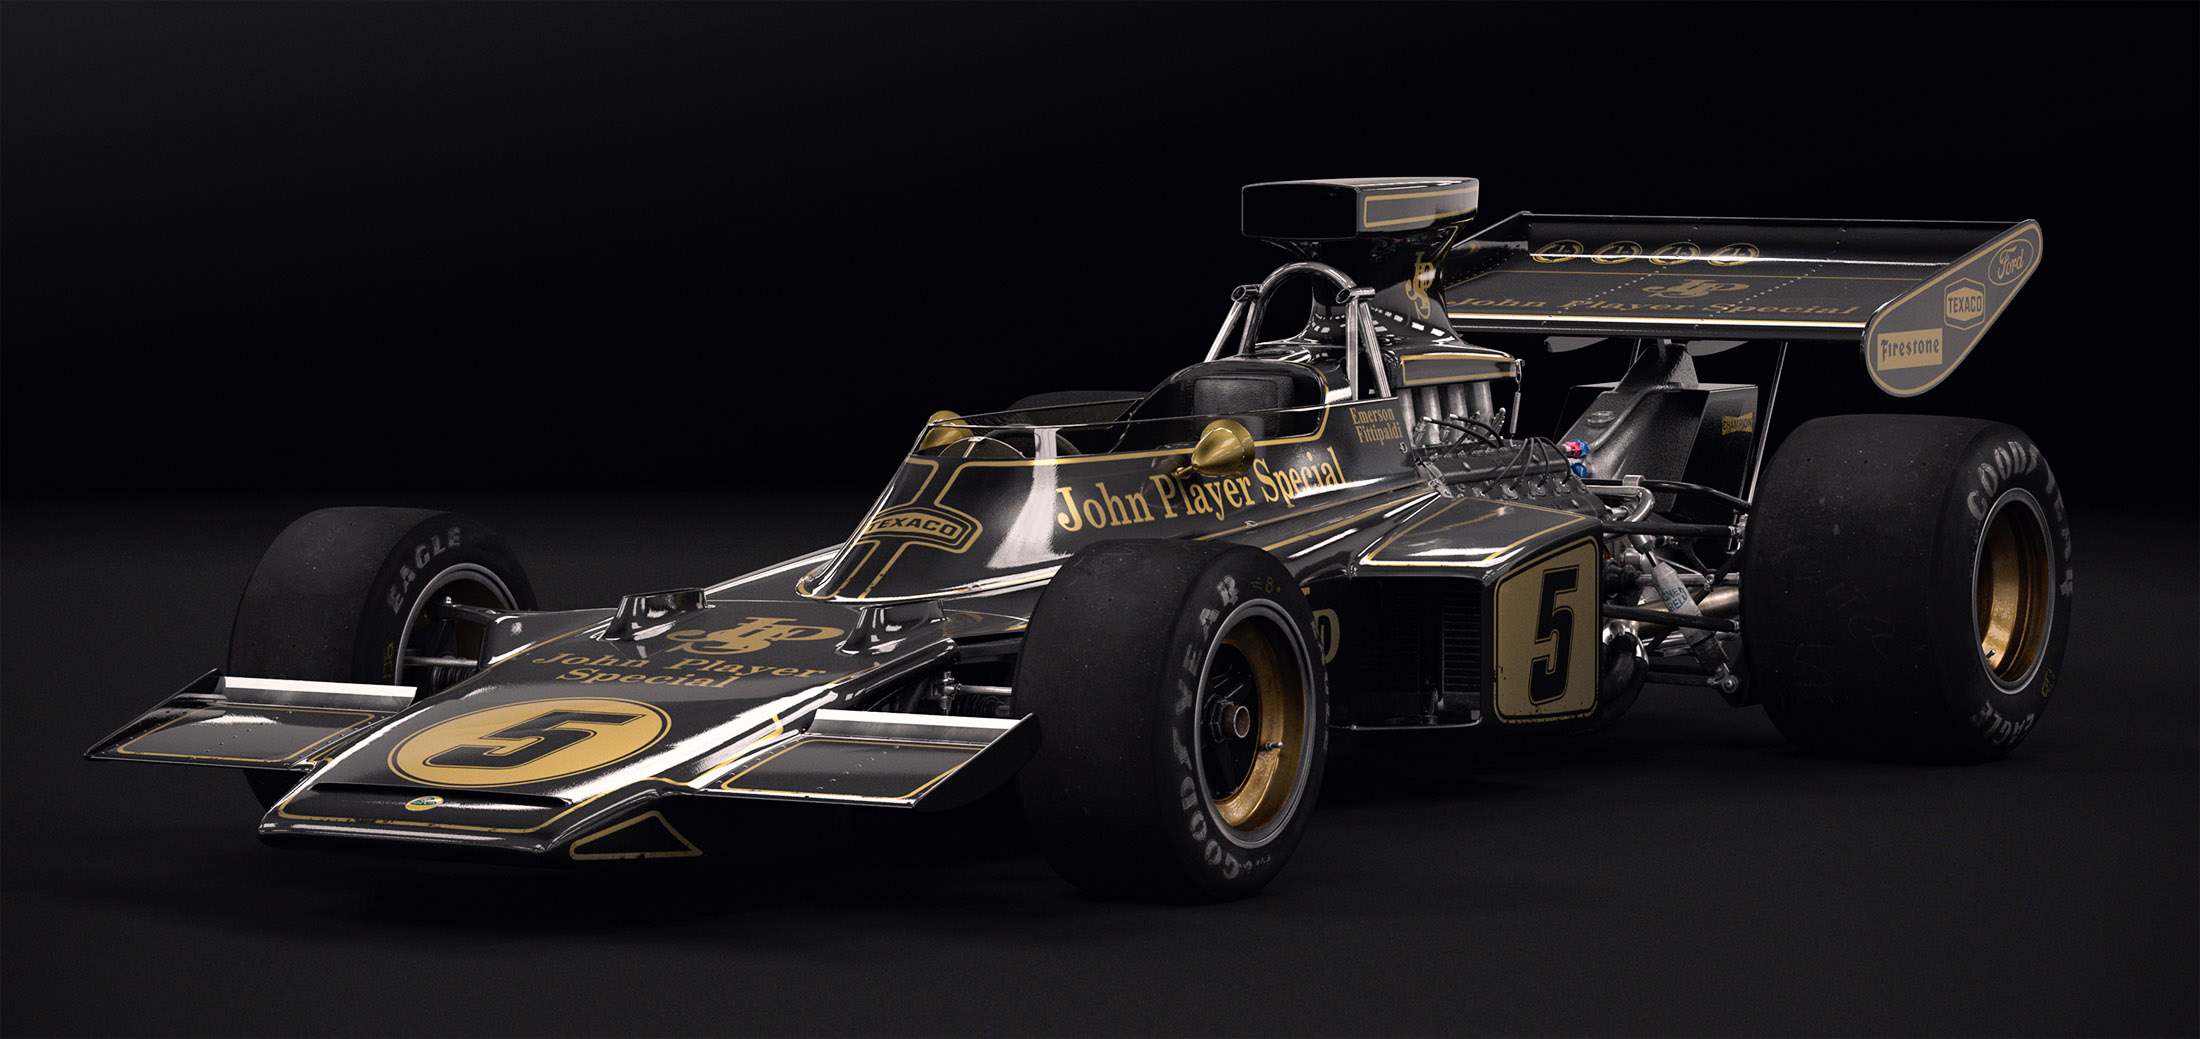 The coolest Formula 1 car of the modern era | Formula 1 Blog